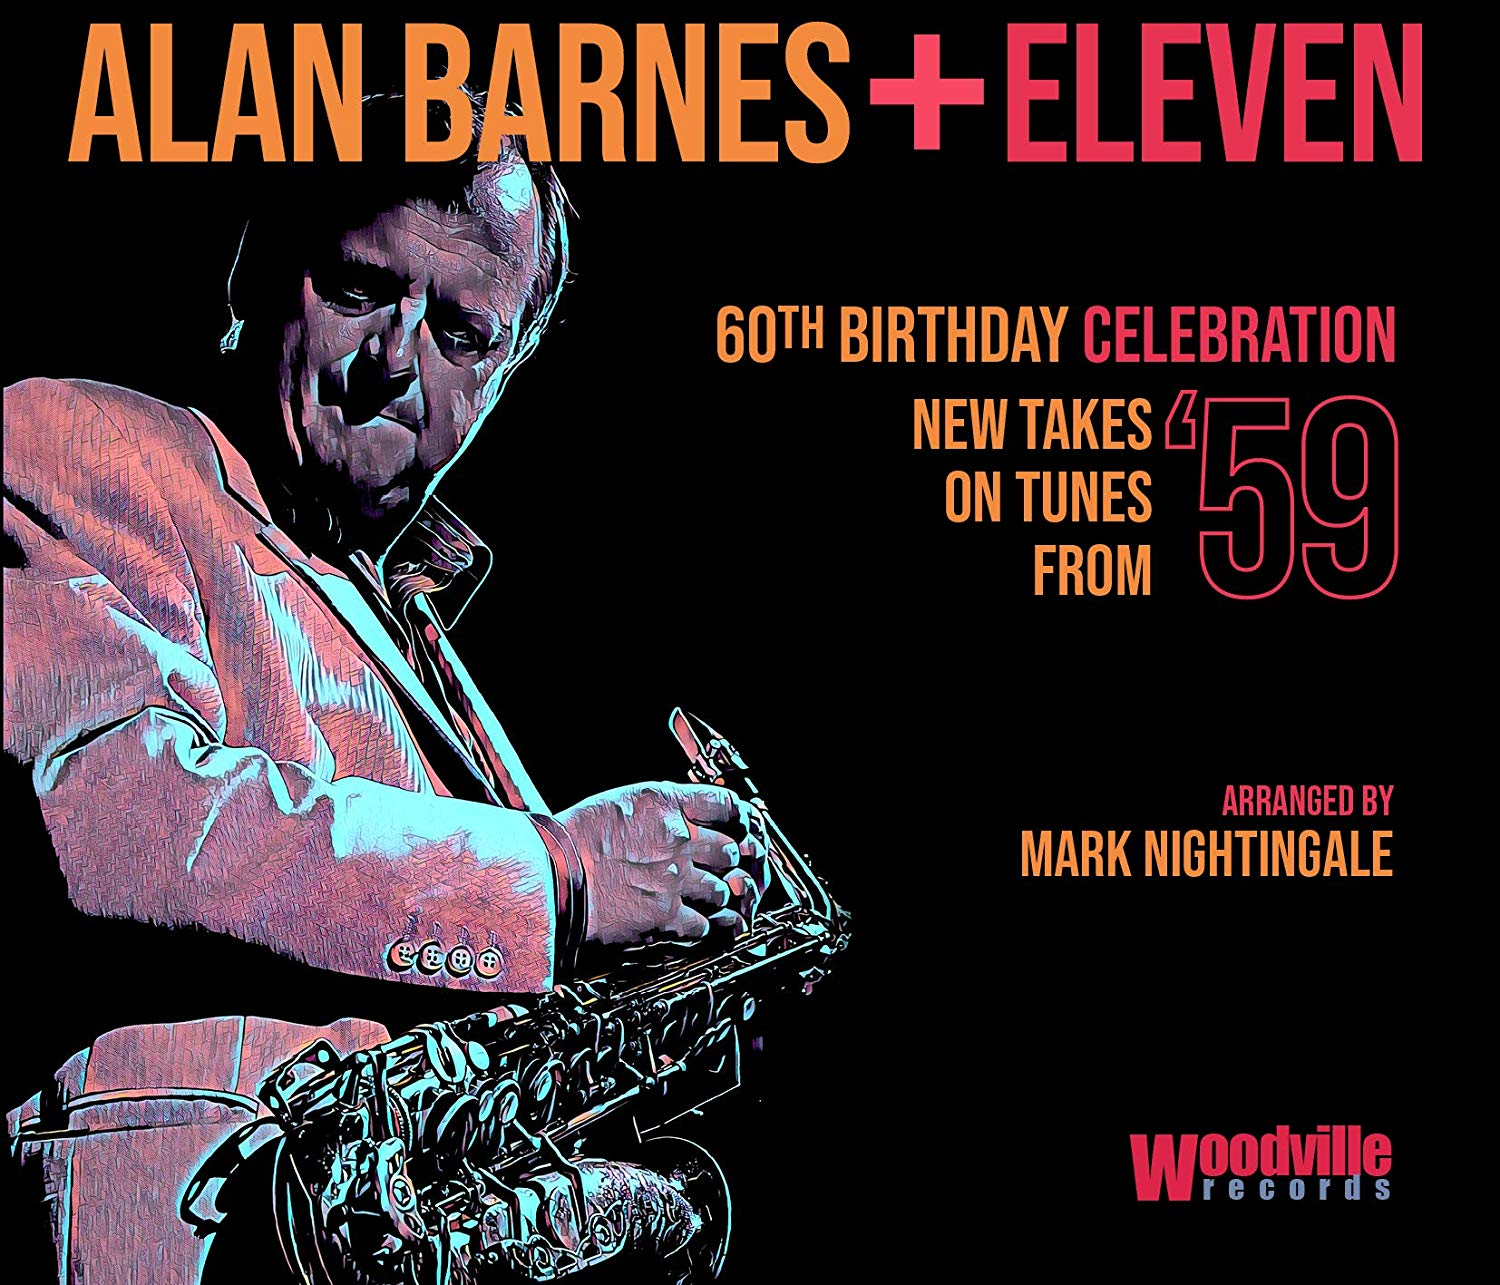 ALAN BARNES - Alan Barnes + Eleven : 60th Birthday Celebration (New Takes on Tunes from '59) cover